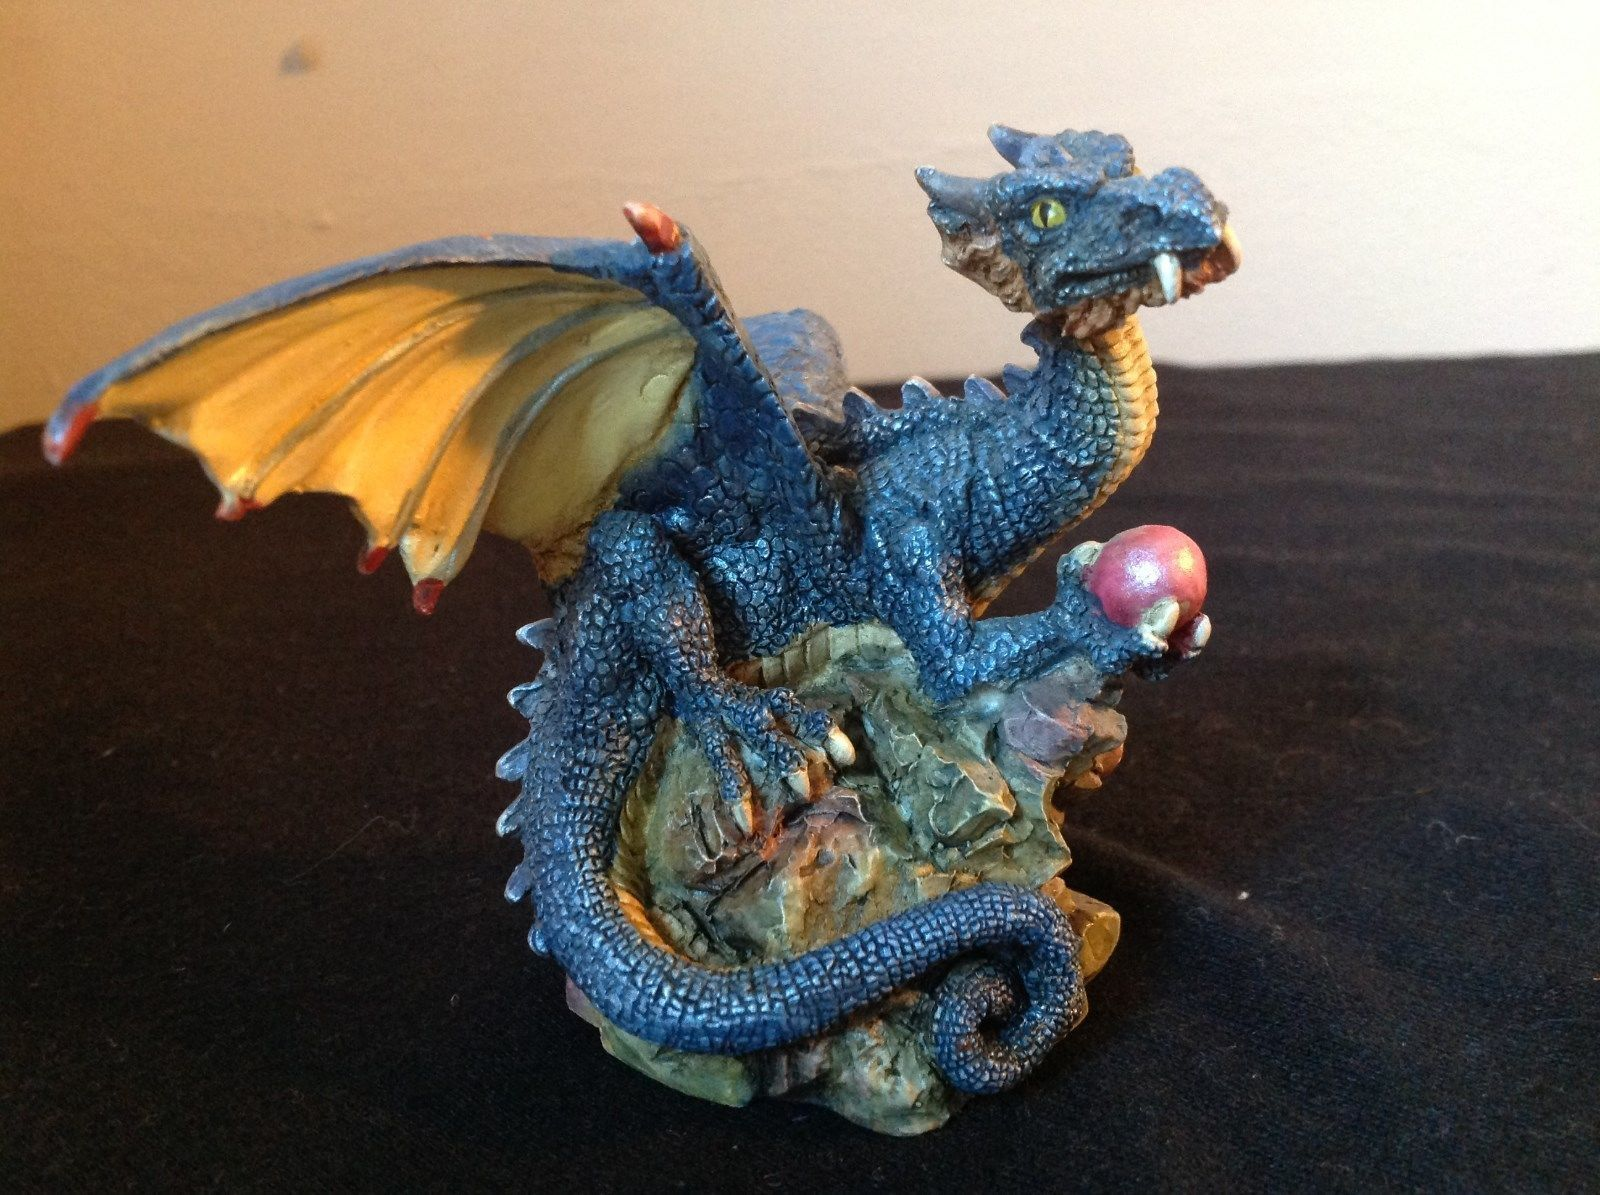 Dark Blue Dragon Statue Holding Red Ball 98 WUI